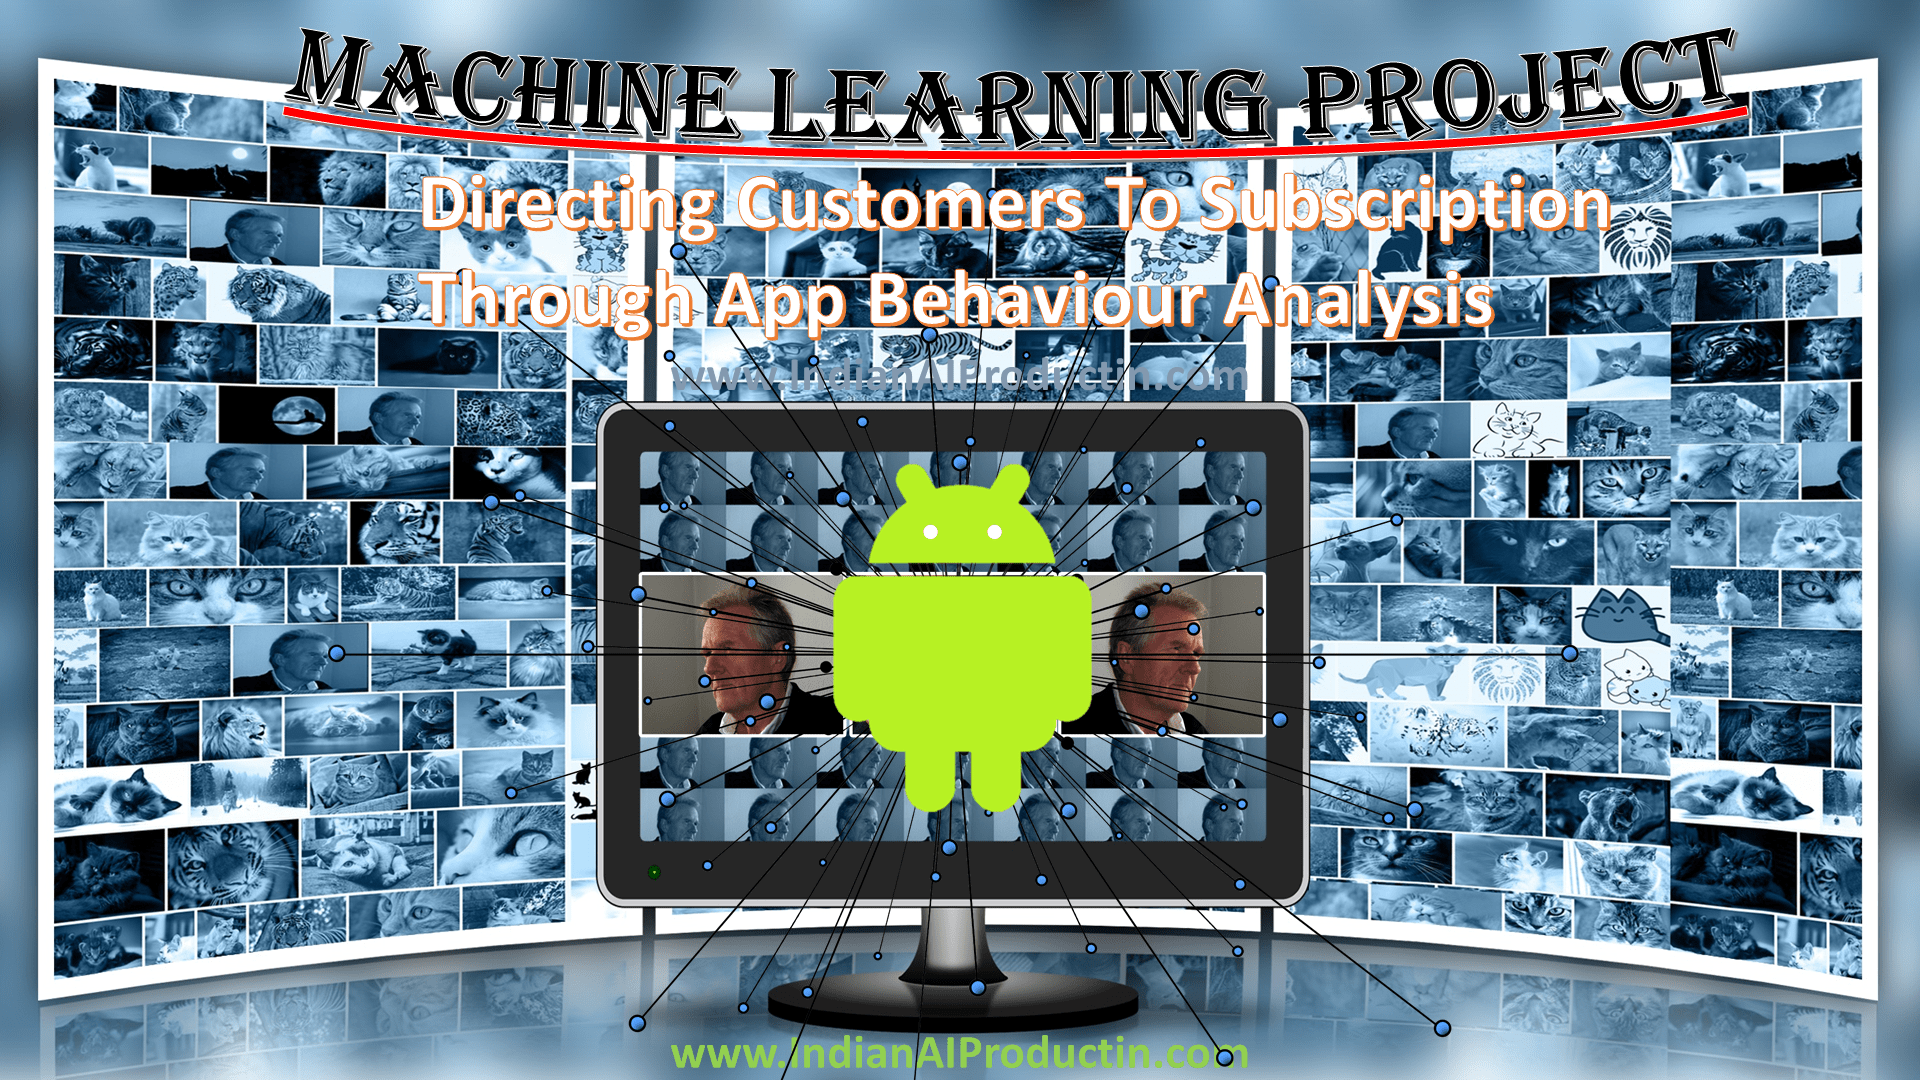 Directing Customers To Subscription Through App Behaviour Machine Learning Project